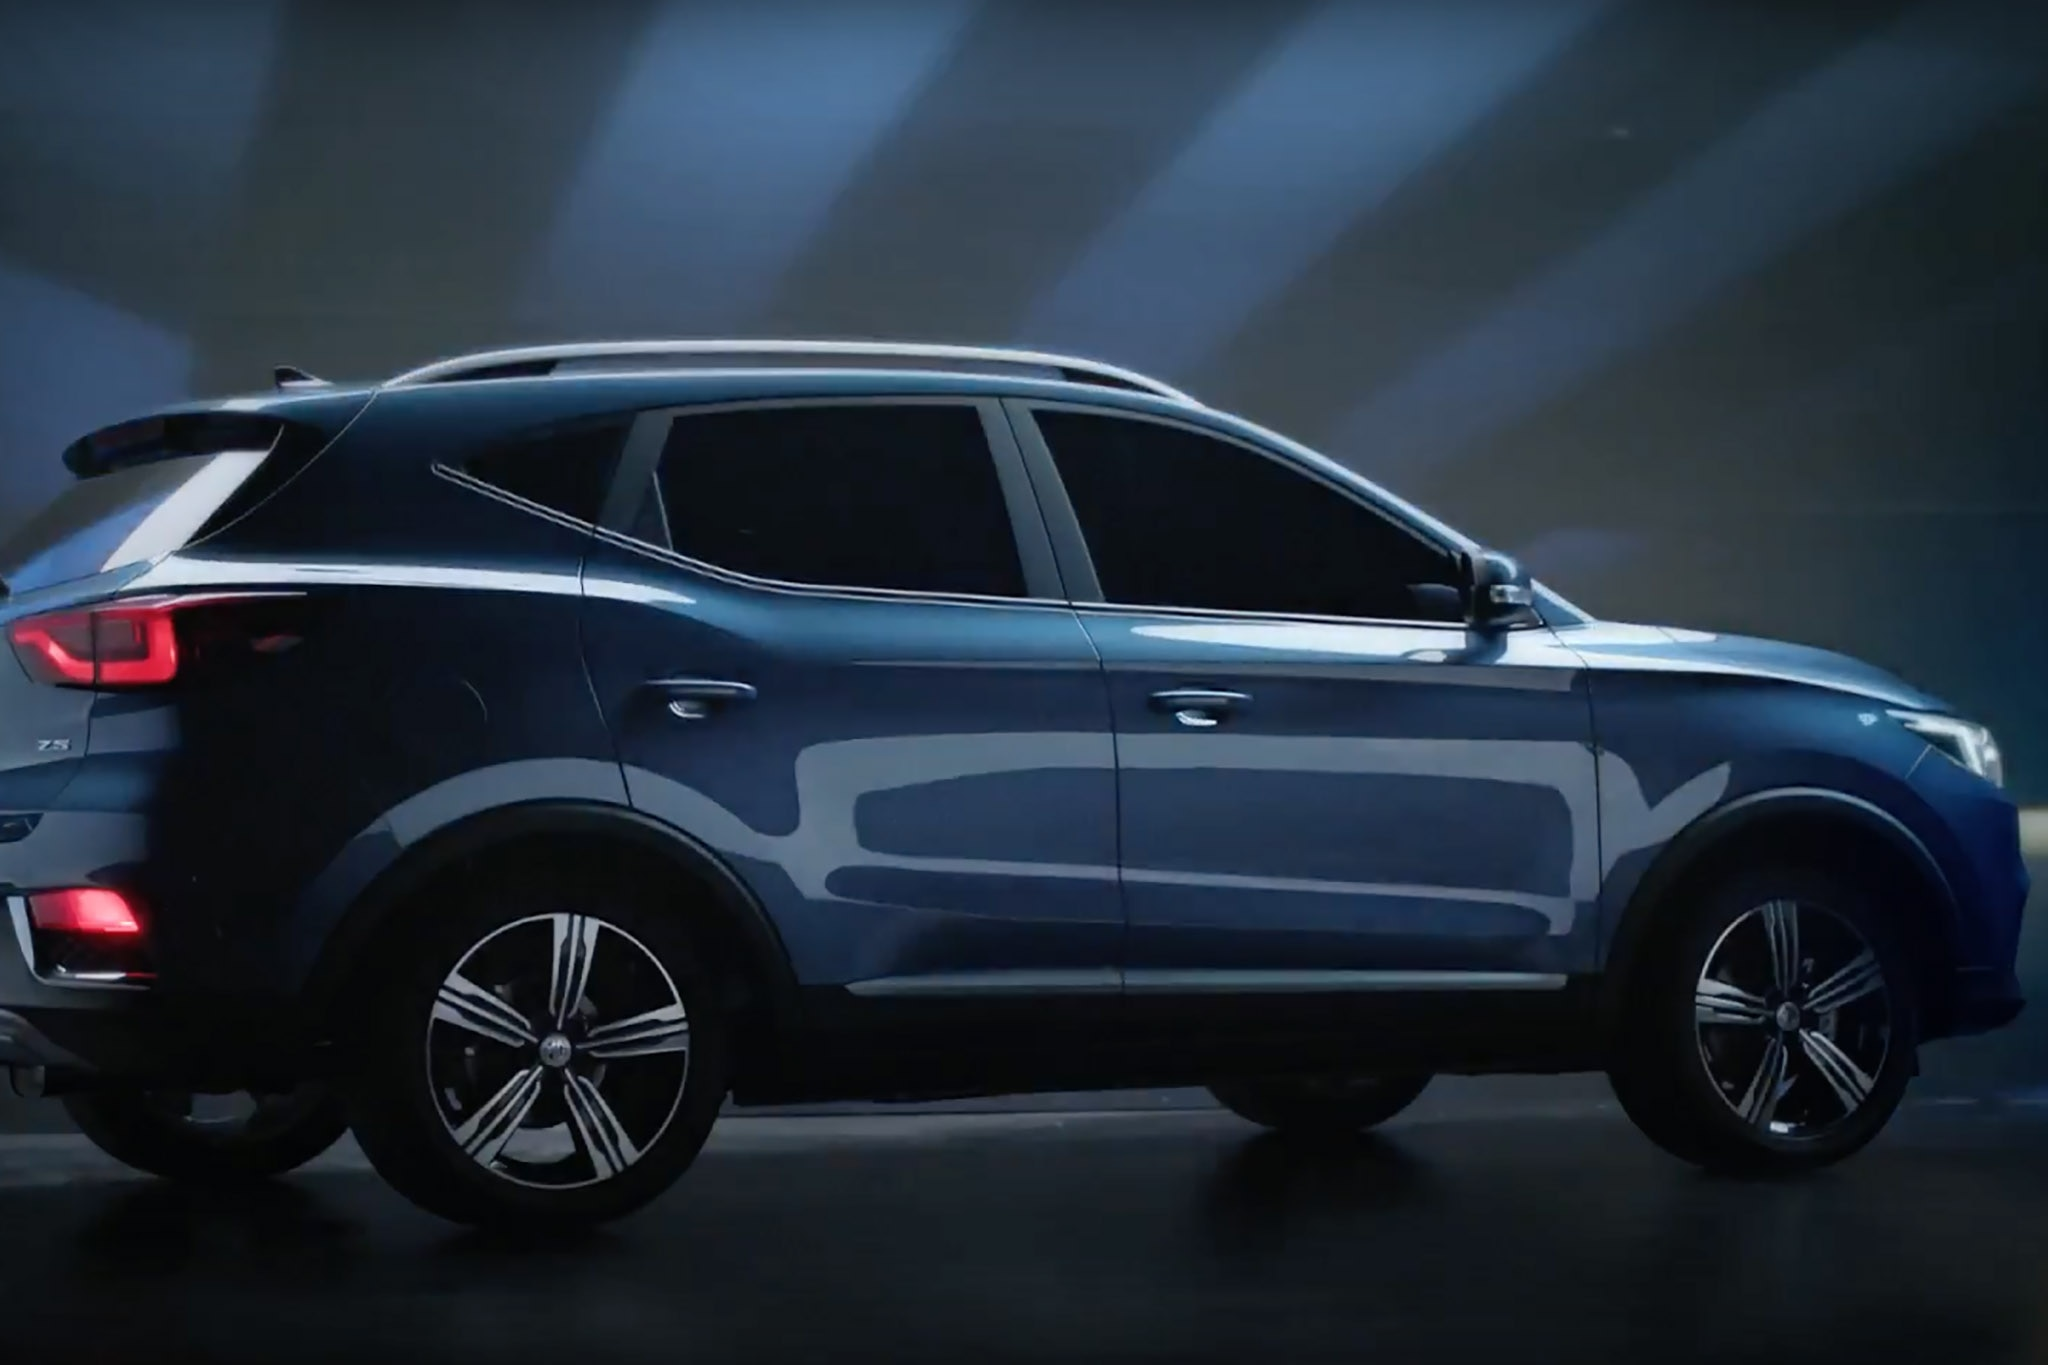 2017 Mg Zs Suv Video Revealed Automobile Magazine